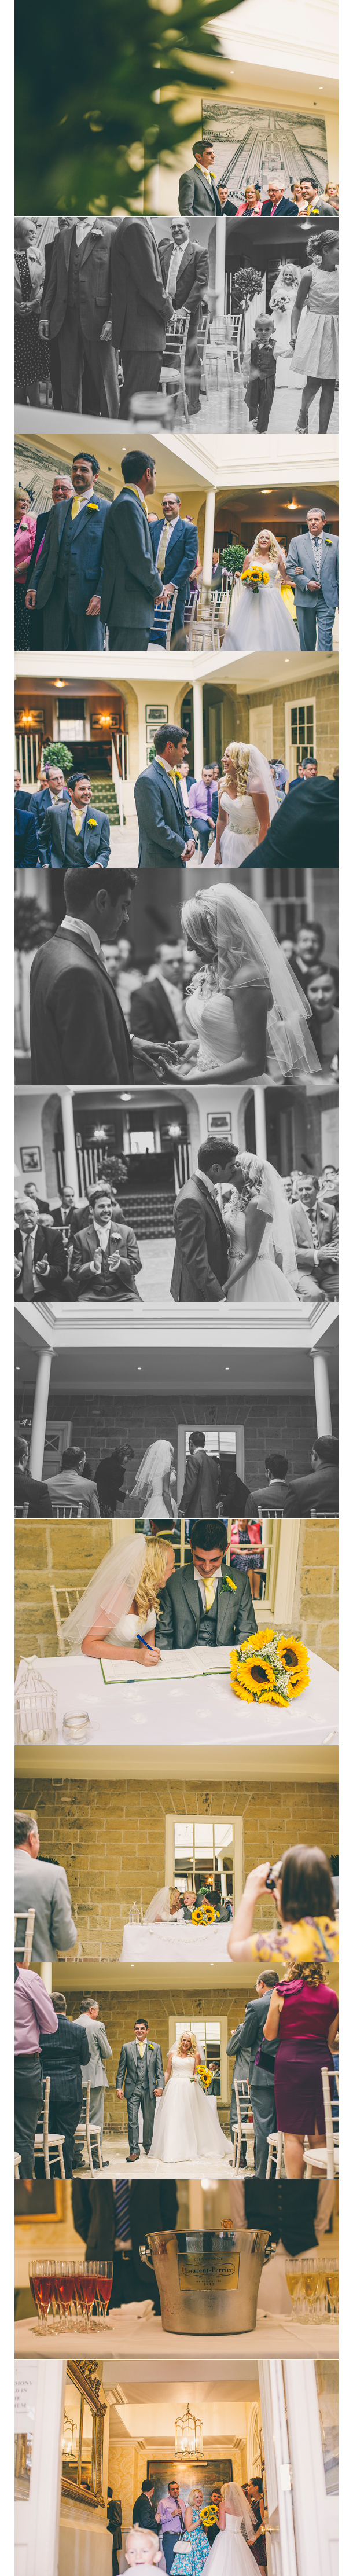 Scarborough-Wedding-Photographer-Malton-Wedding-Photography-The-Talbot-Naomi-&-Rik-Blog3